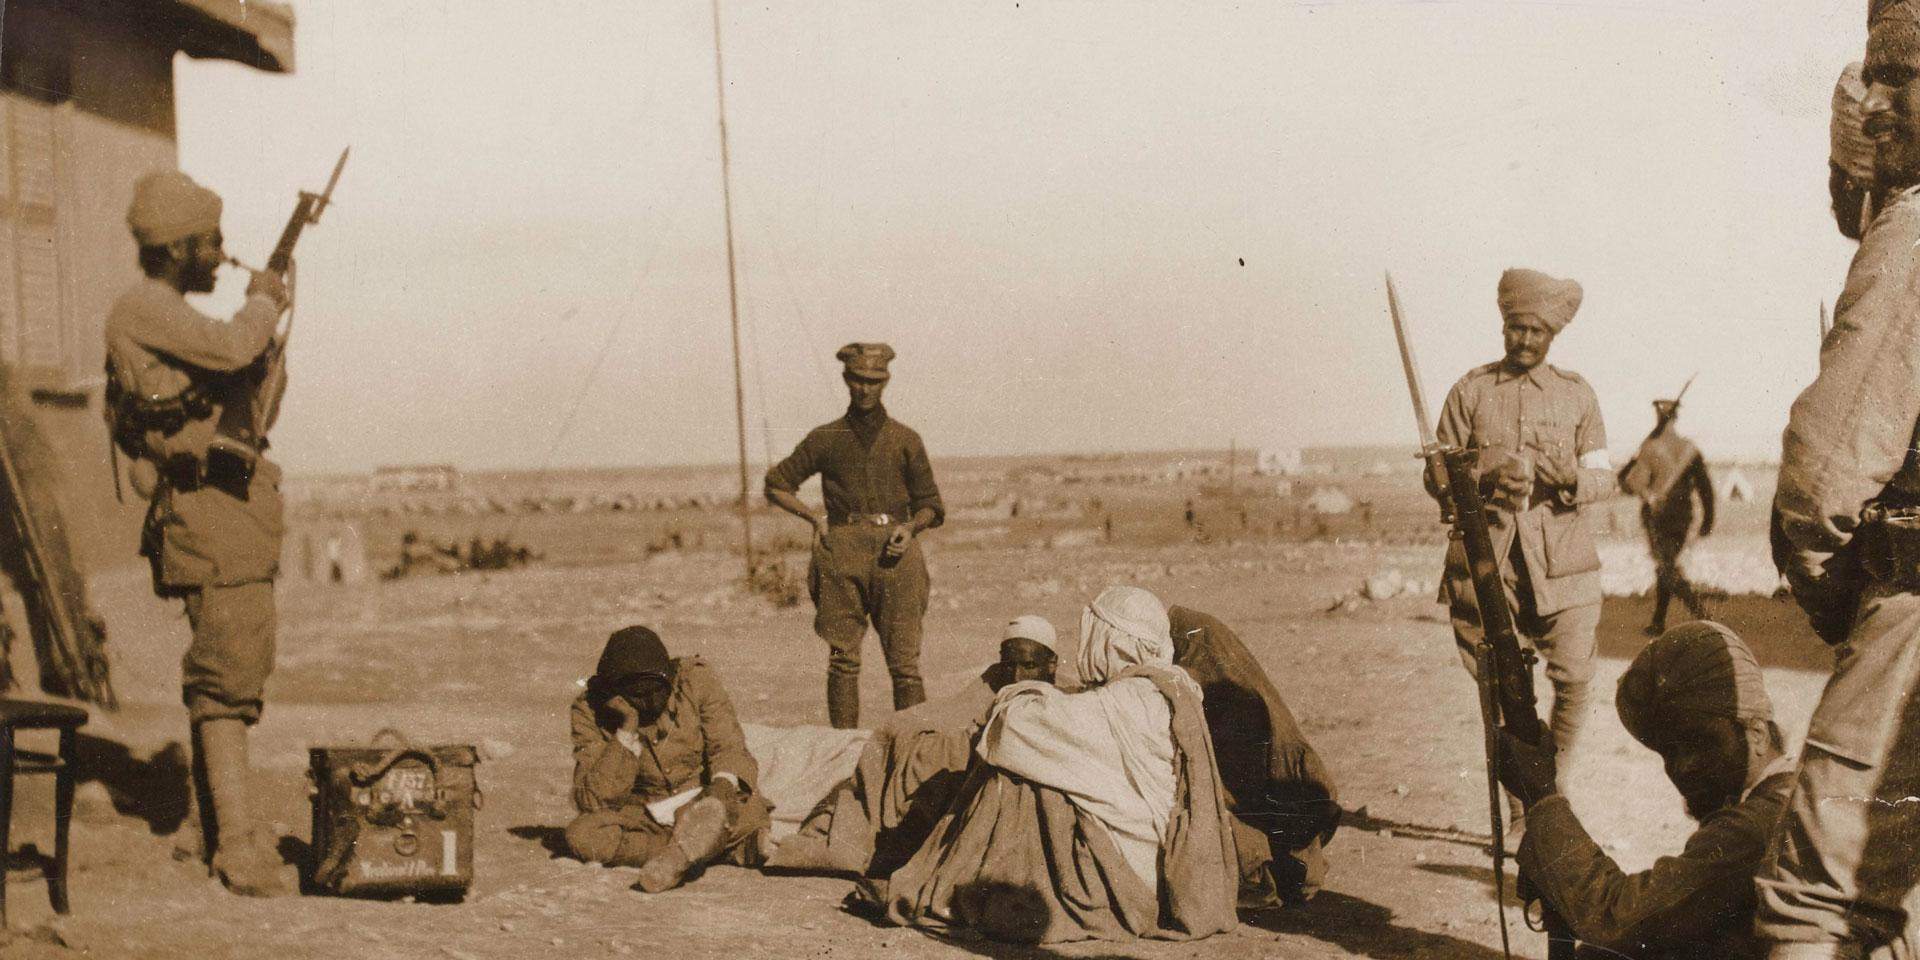 Indian Army soldiers stand guard over wounded Bedouin at Mersa Matruh, 1915